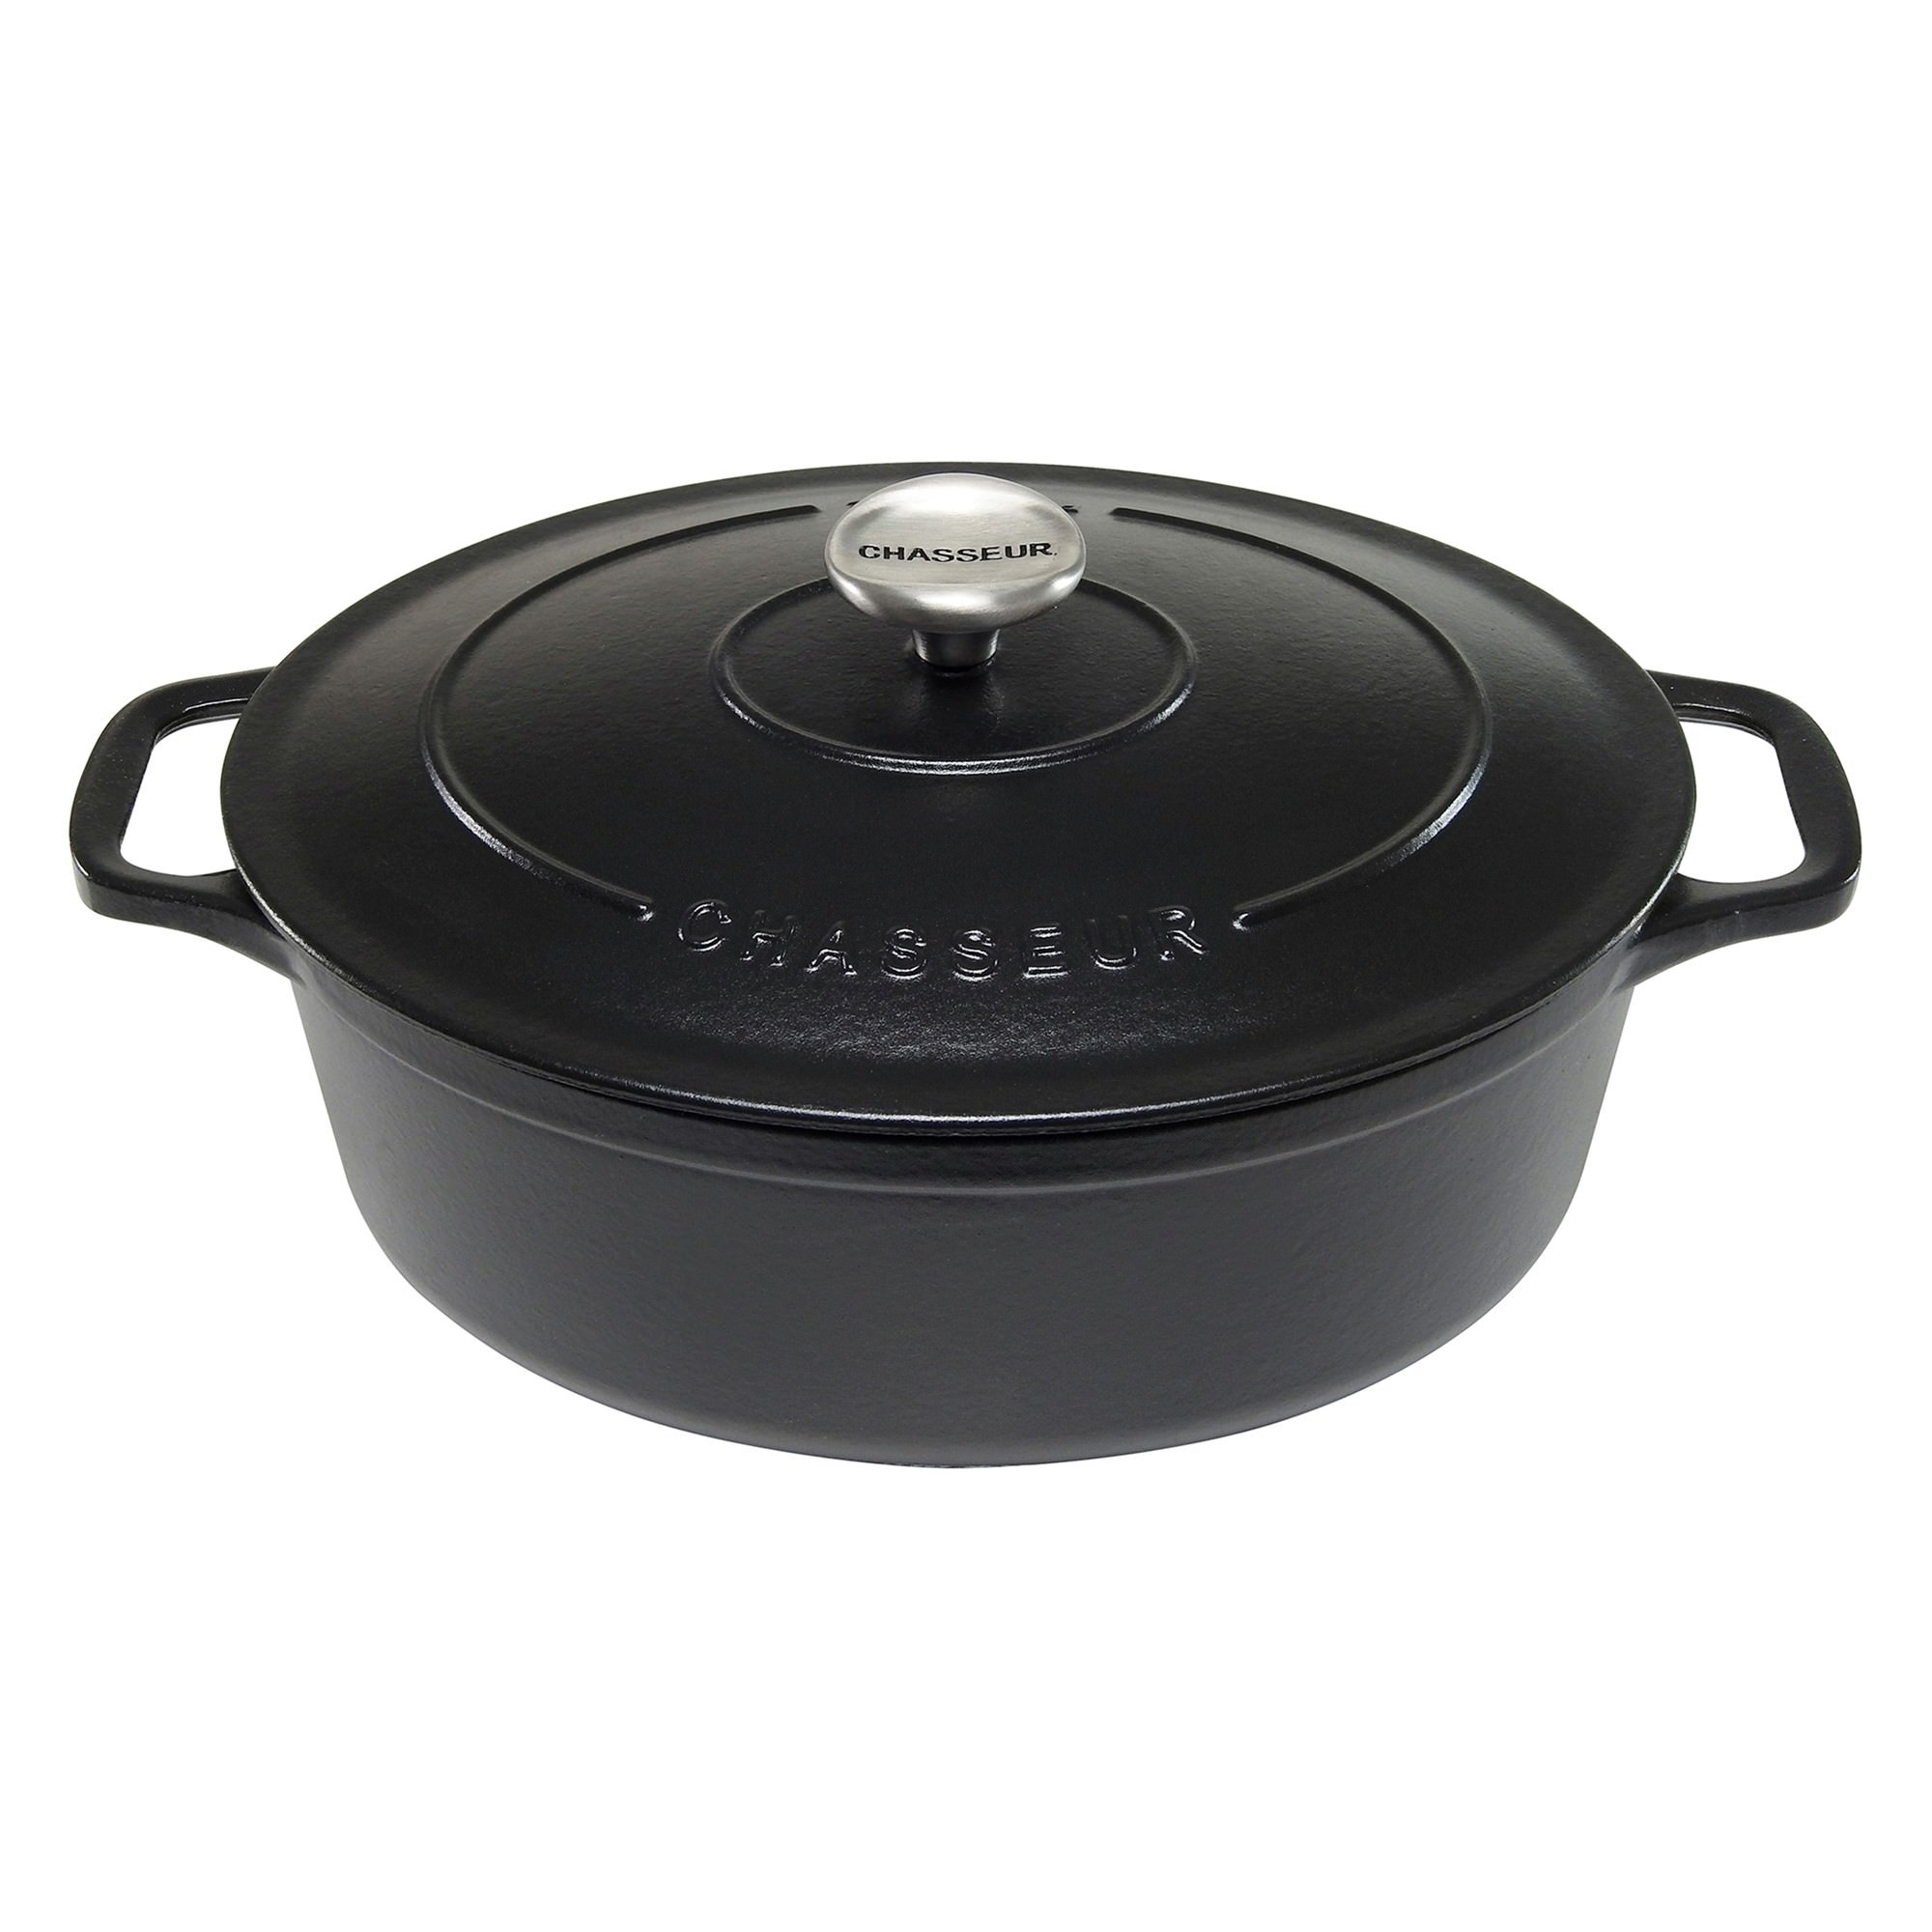 Chasseur Cast Iron Oval French Oven, 27cm, Matte Black